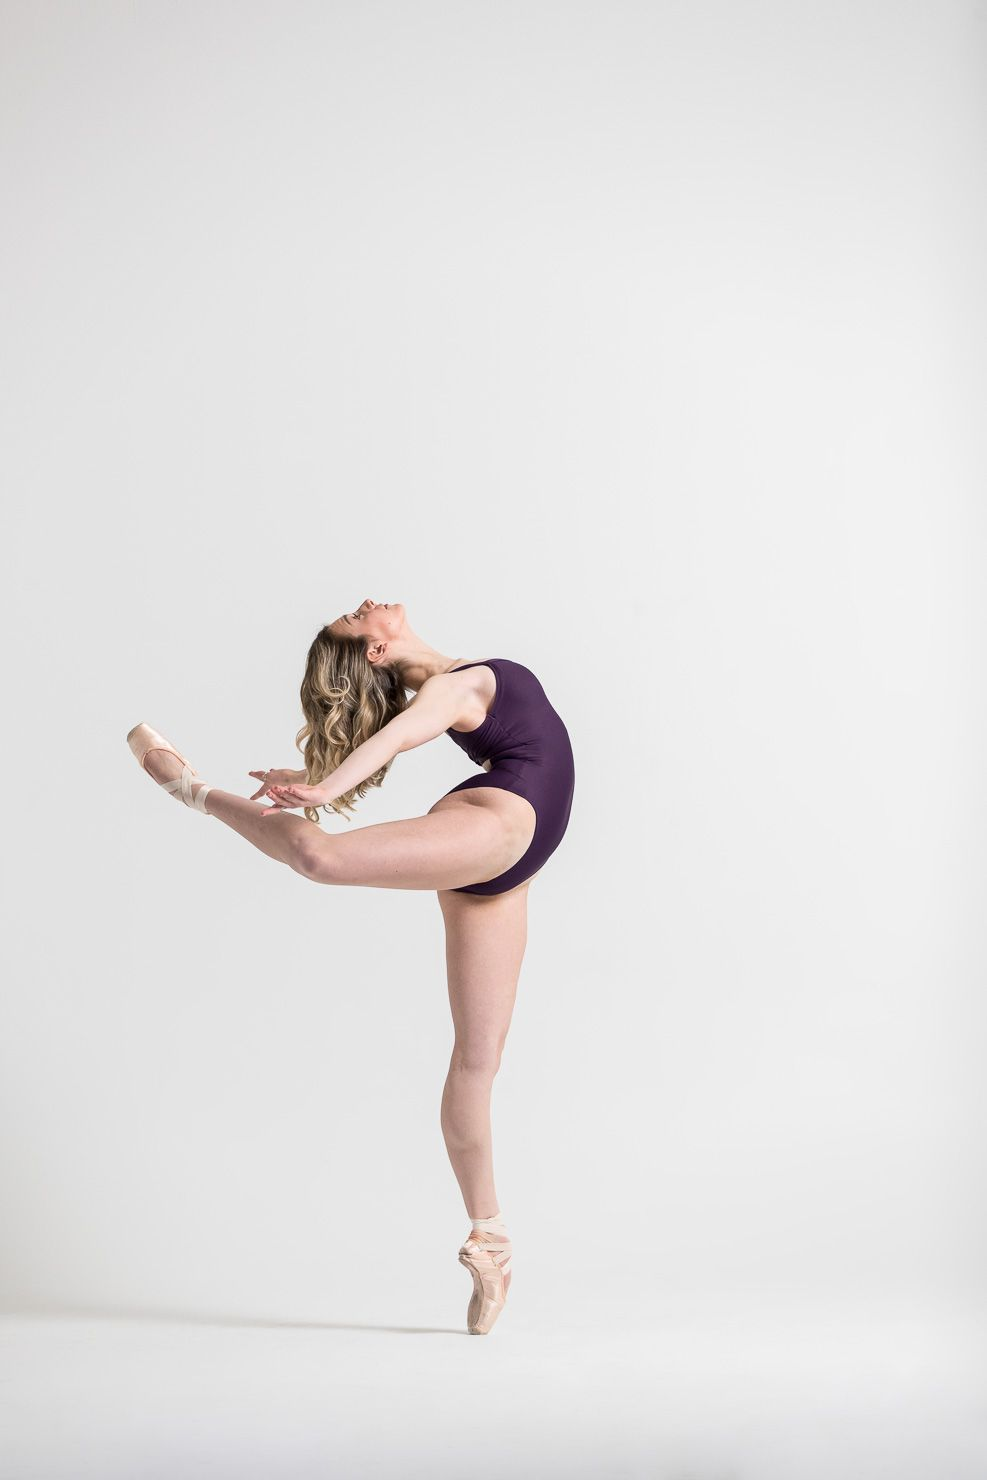 Ballerina, Arabesque, Pointe, Beautiful Dancer, Studio Photo, Dance Model, Dance by aKaiserPhoto, aKaiserPhoto, Dancer